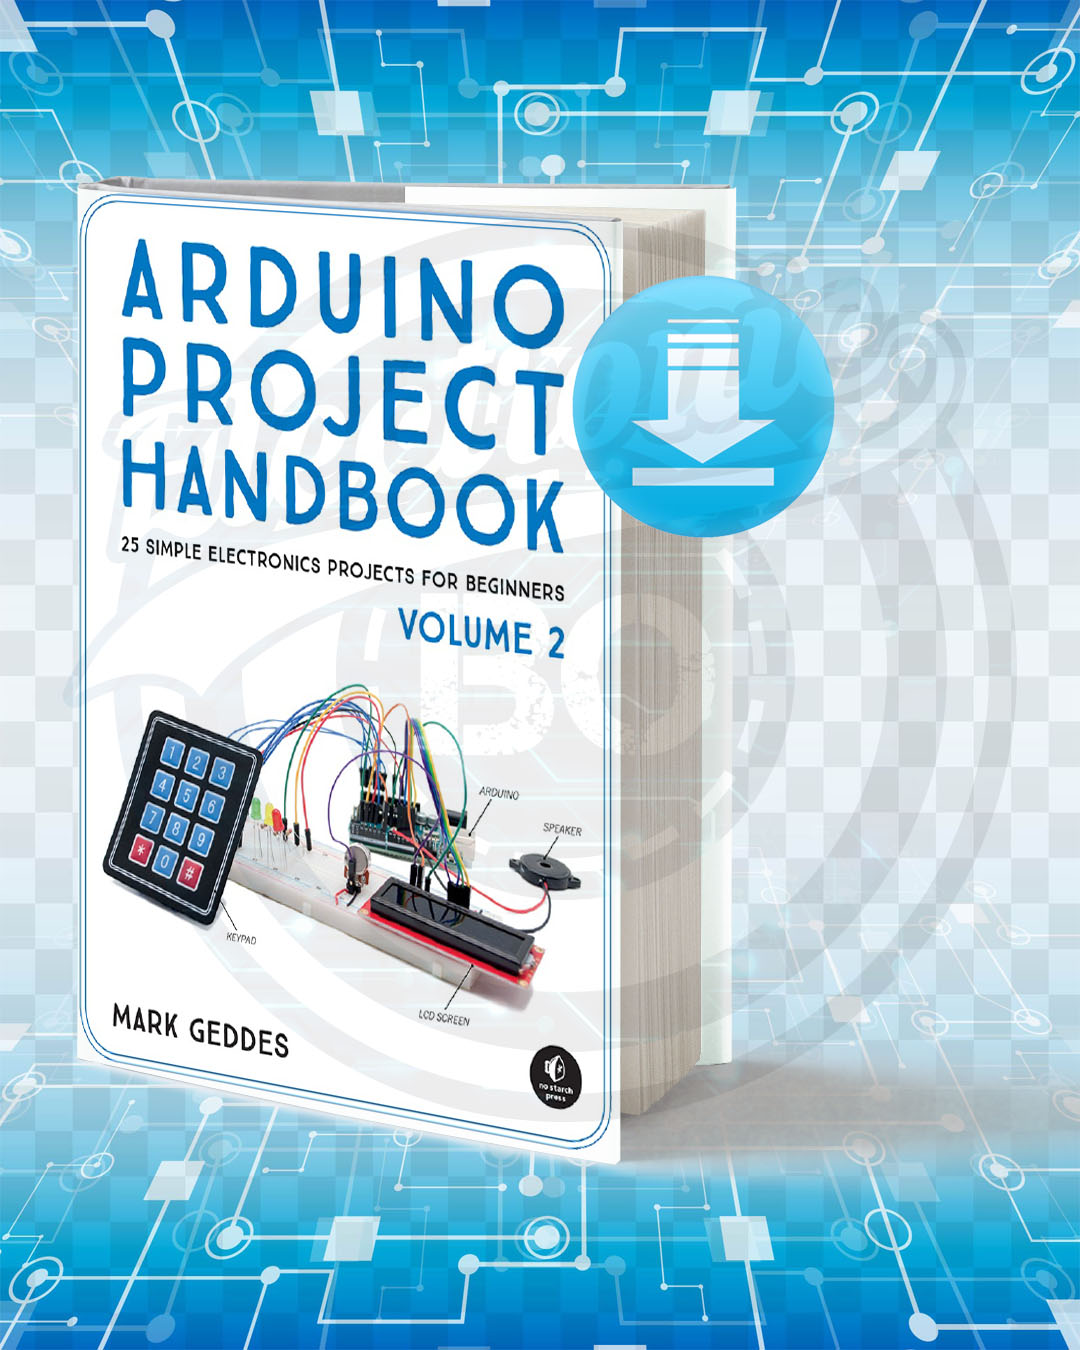 Free Book Arduino Project Handbook Volume 2 pdf.